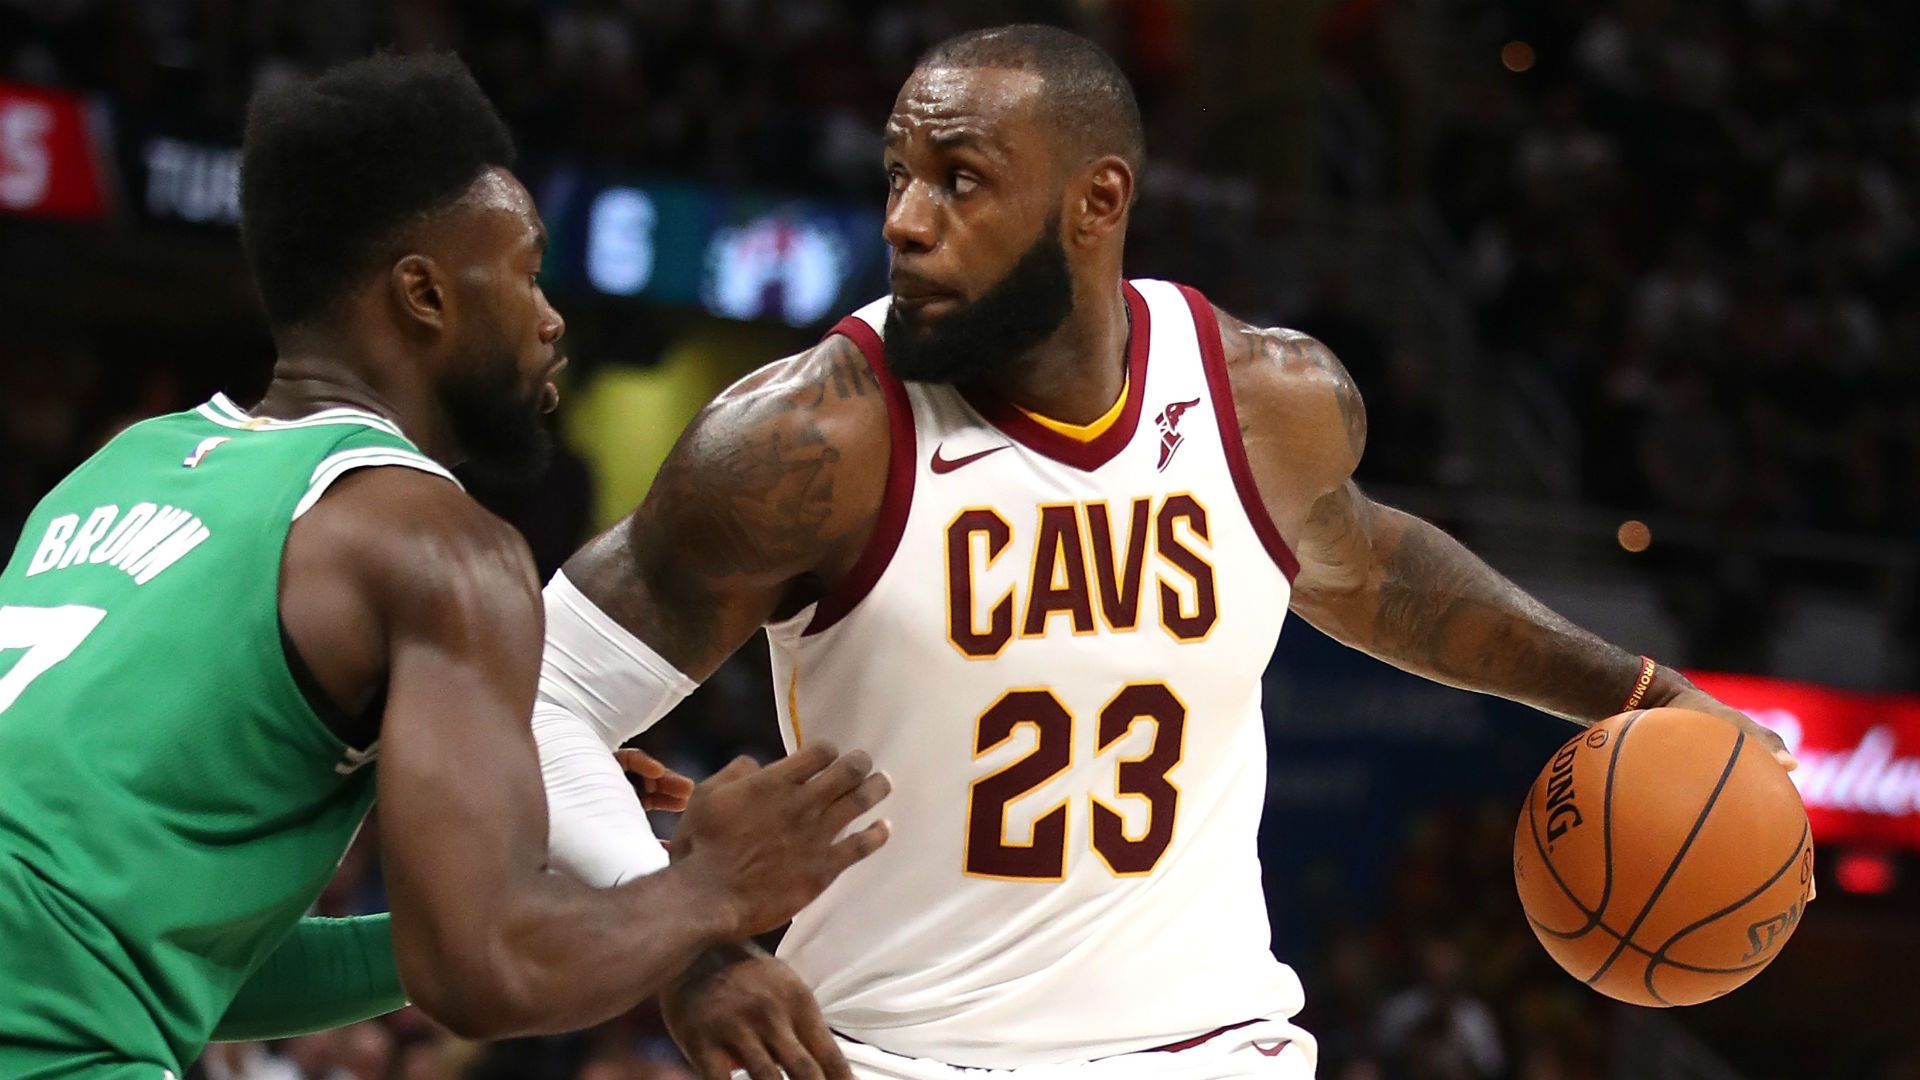 Cavs forward Le Bron James defended by Celtics forward Jaylen Brown